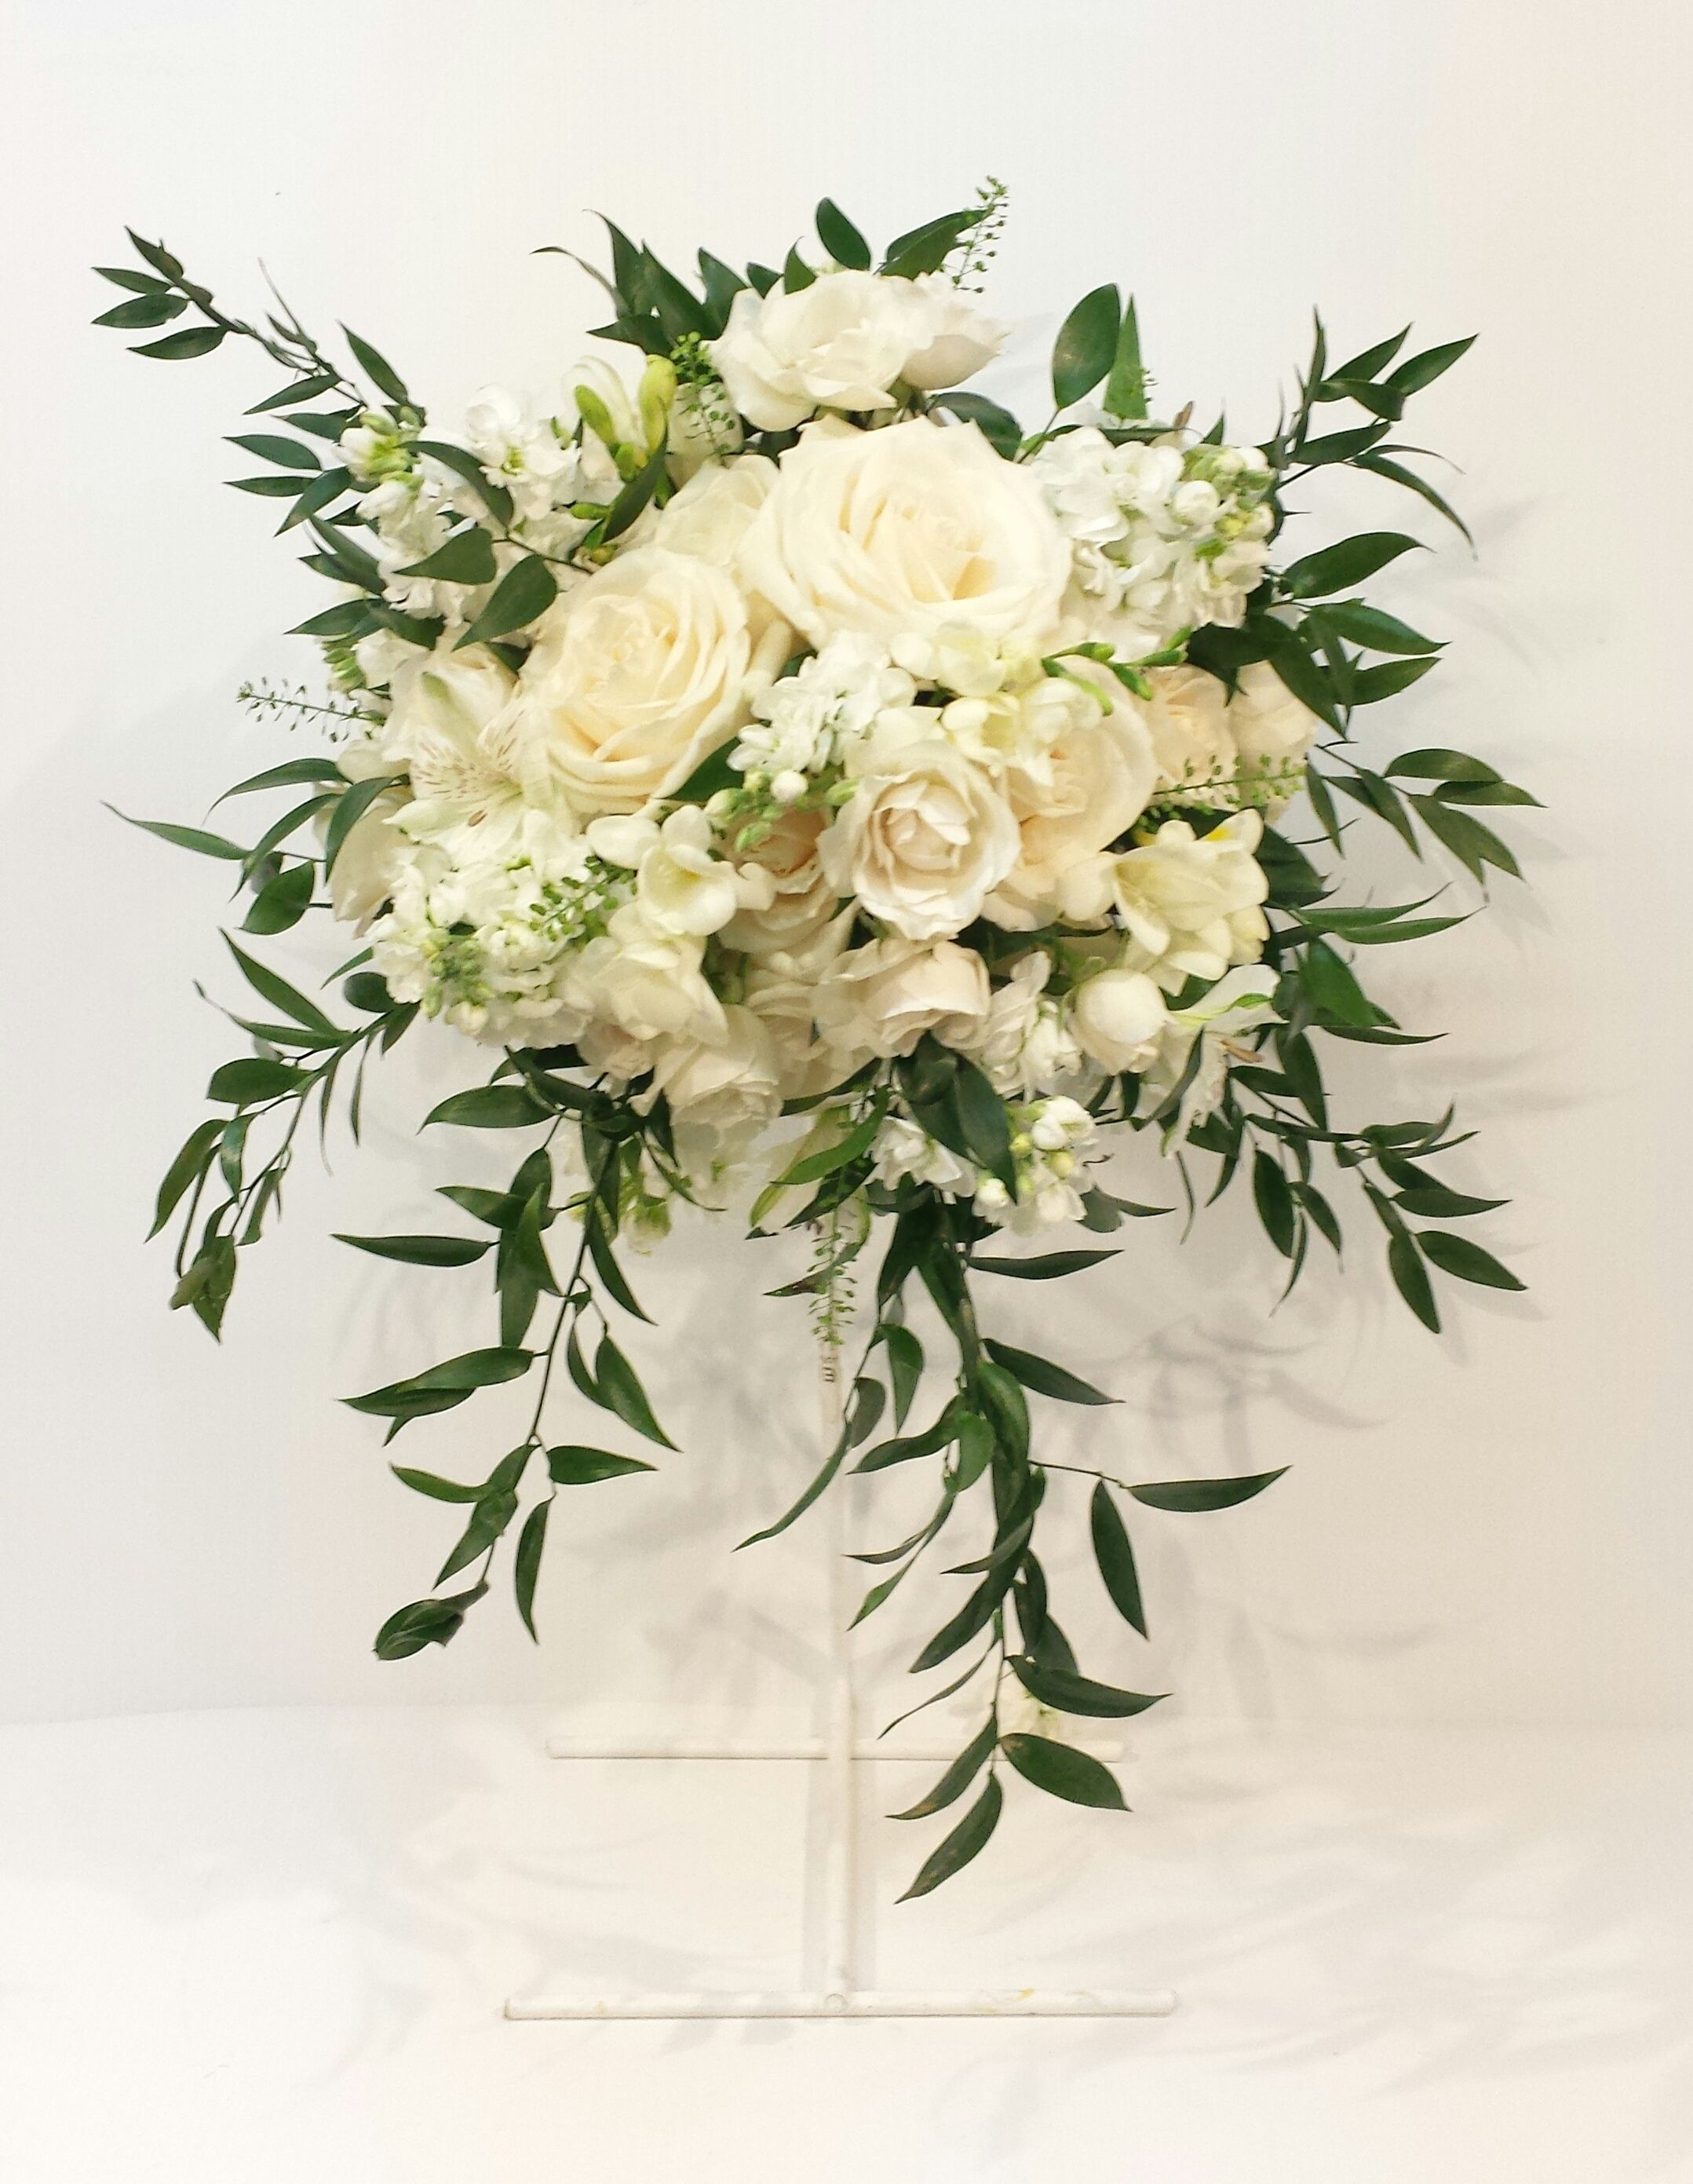 Calgary wedding flowers florist real inspiration cream ivory white calgary wedding flowers florist real inspiration cream ivory white champagne green bridal party bouquets dahlia floral dhlflorist Image collections